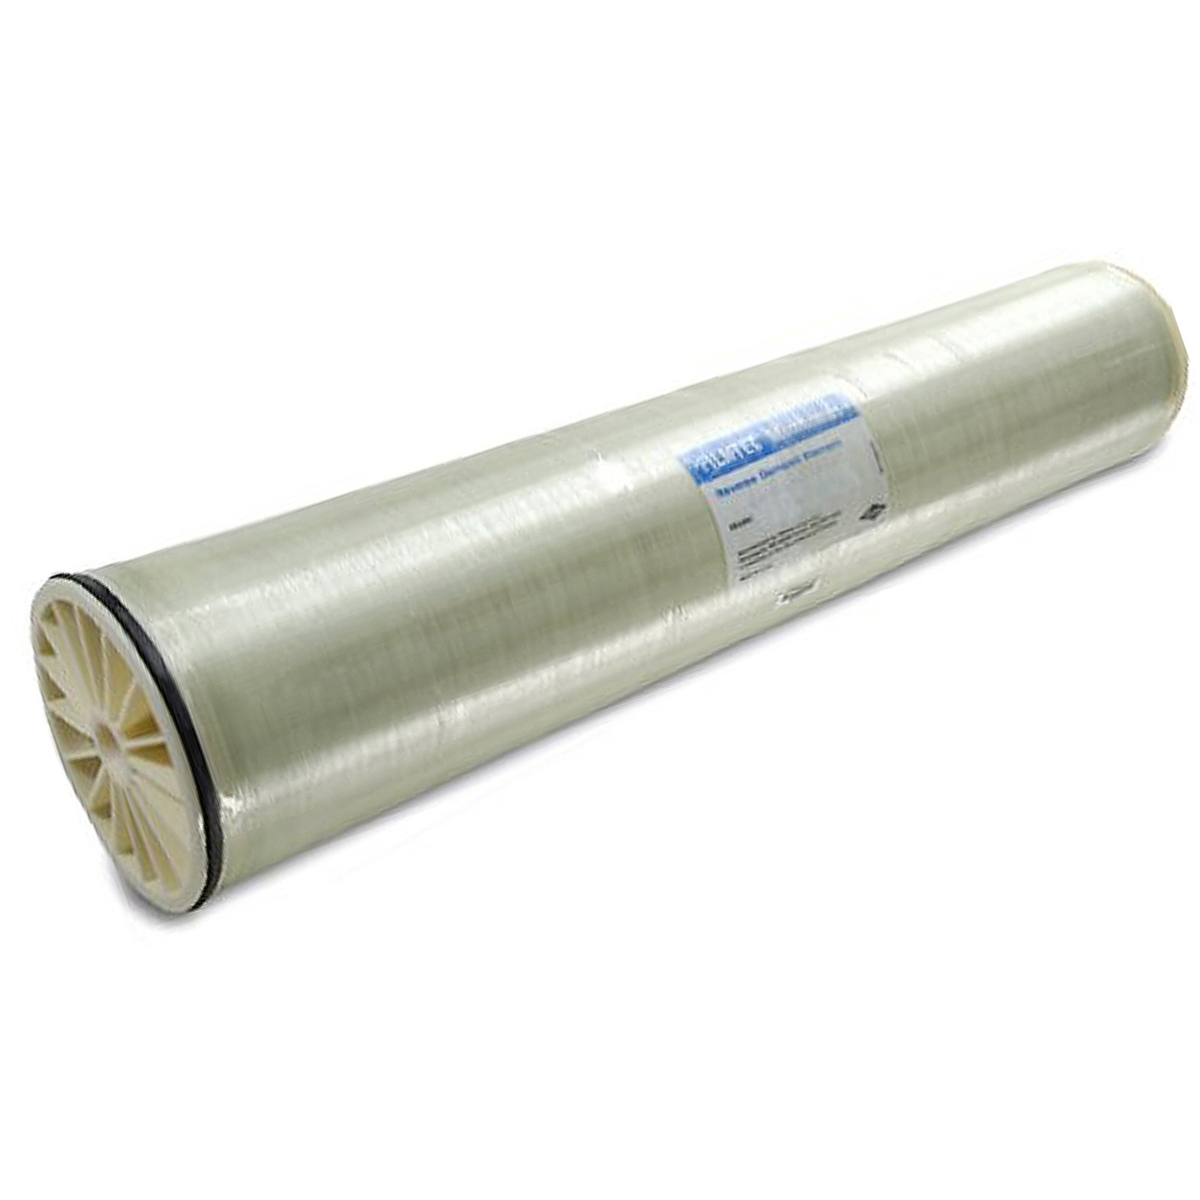 Filmtec Sw30hr 380 Sea Water Desalination Membrane